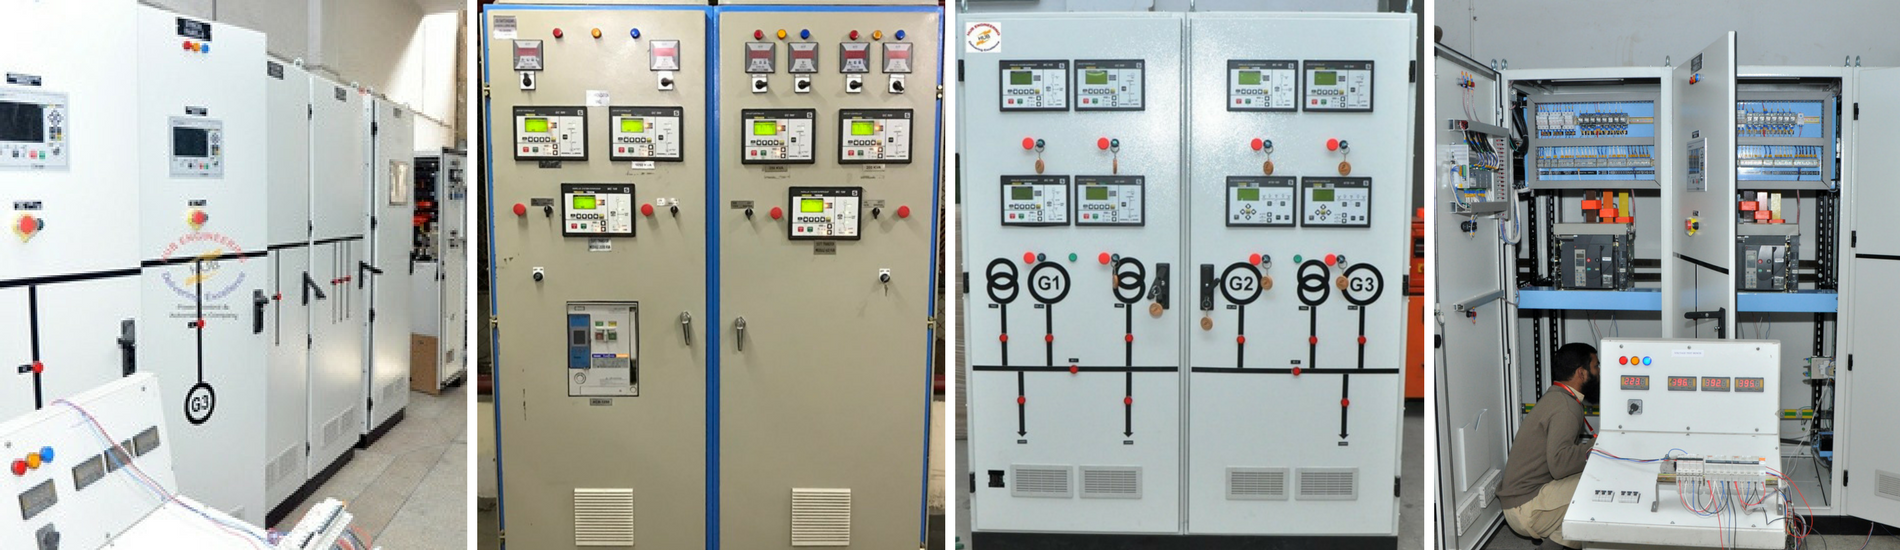 Switchgear Panels 04